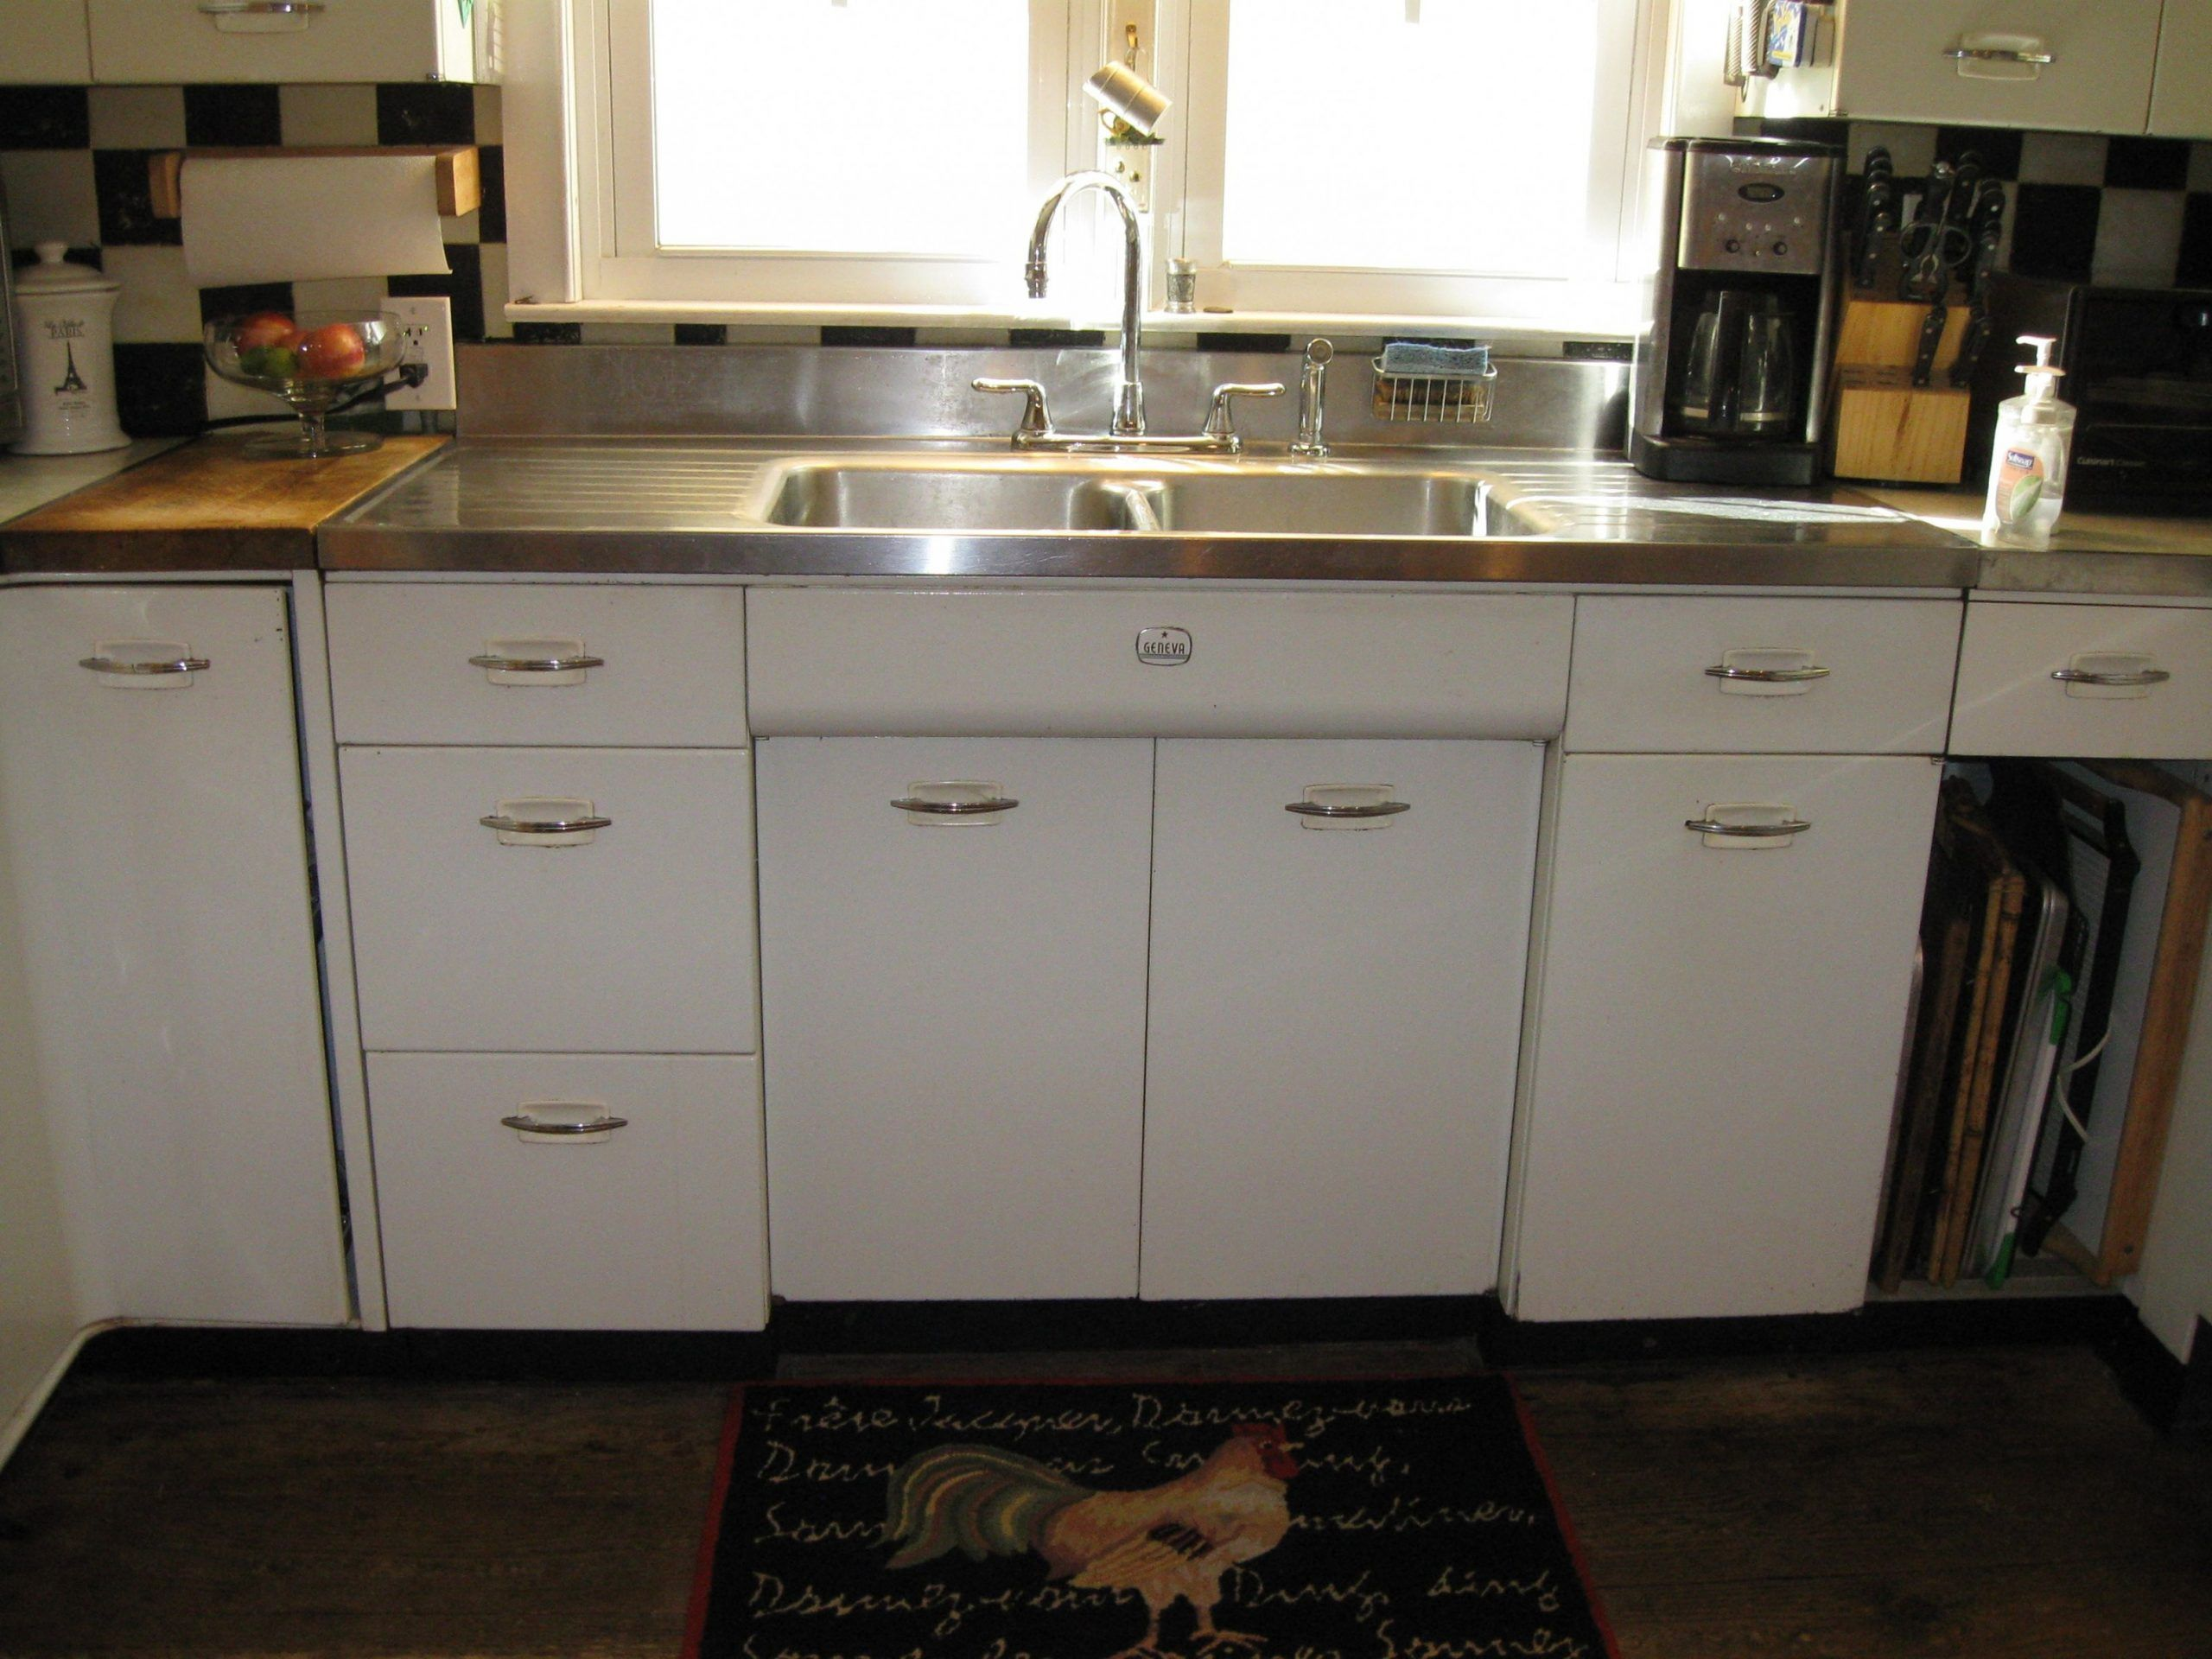 Cheap Metal Kitchen Cabinets Metal Kitchen Cabinets Used Kitchen Cabinets Kitchen Cabinets For Sale